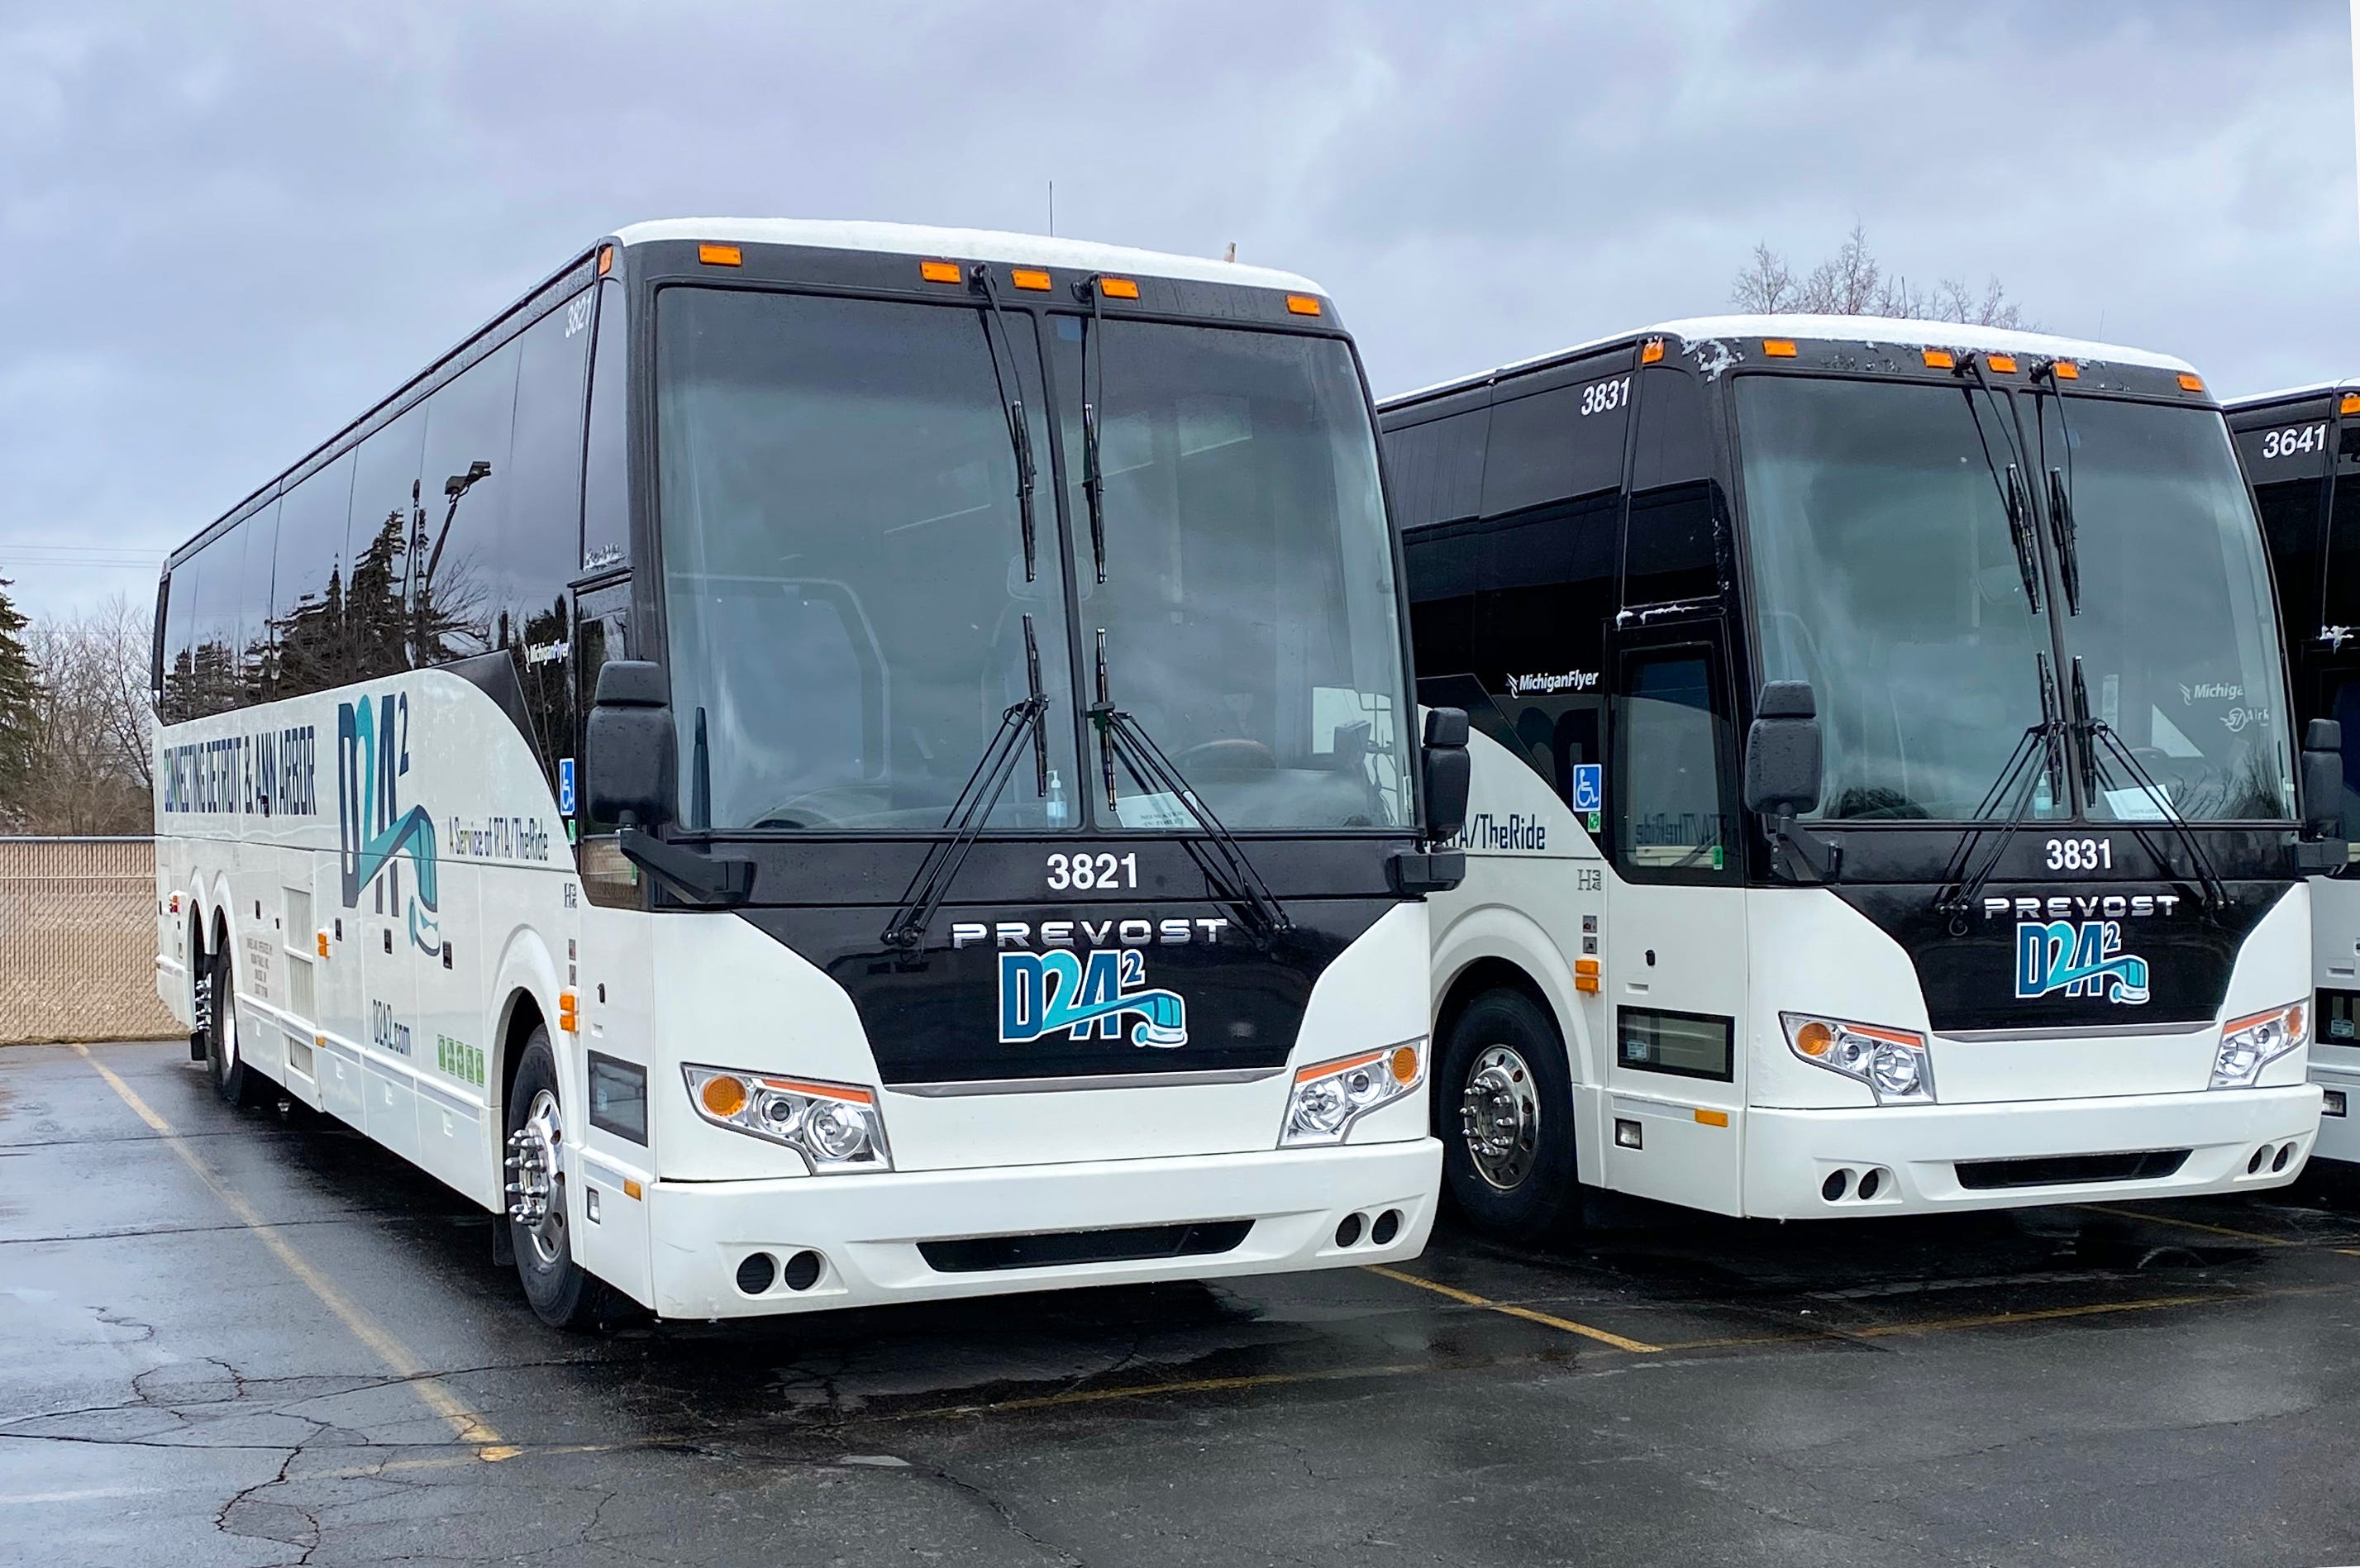 Detroit to Ann Arbor bus ready to resume after COVID-19 hiatus